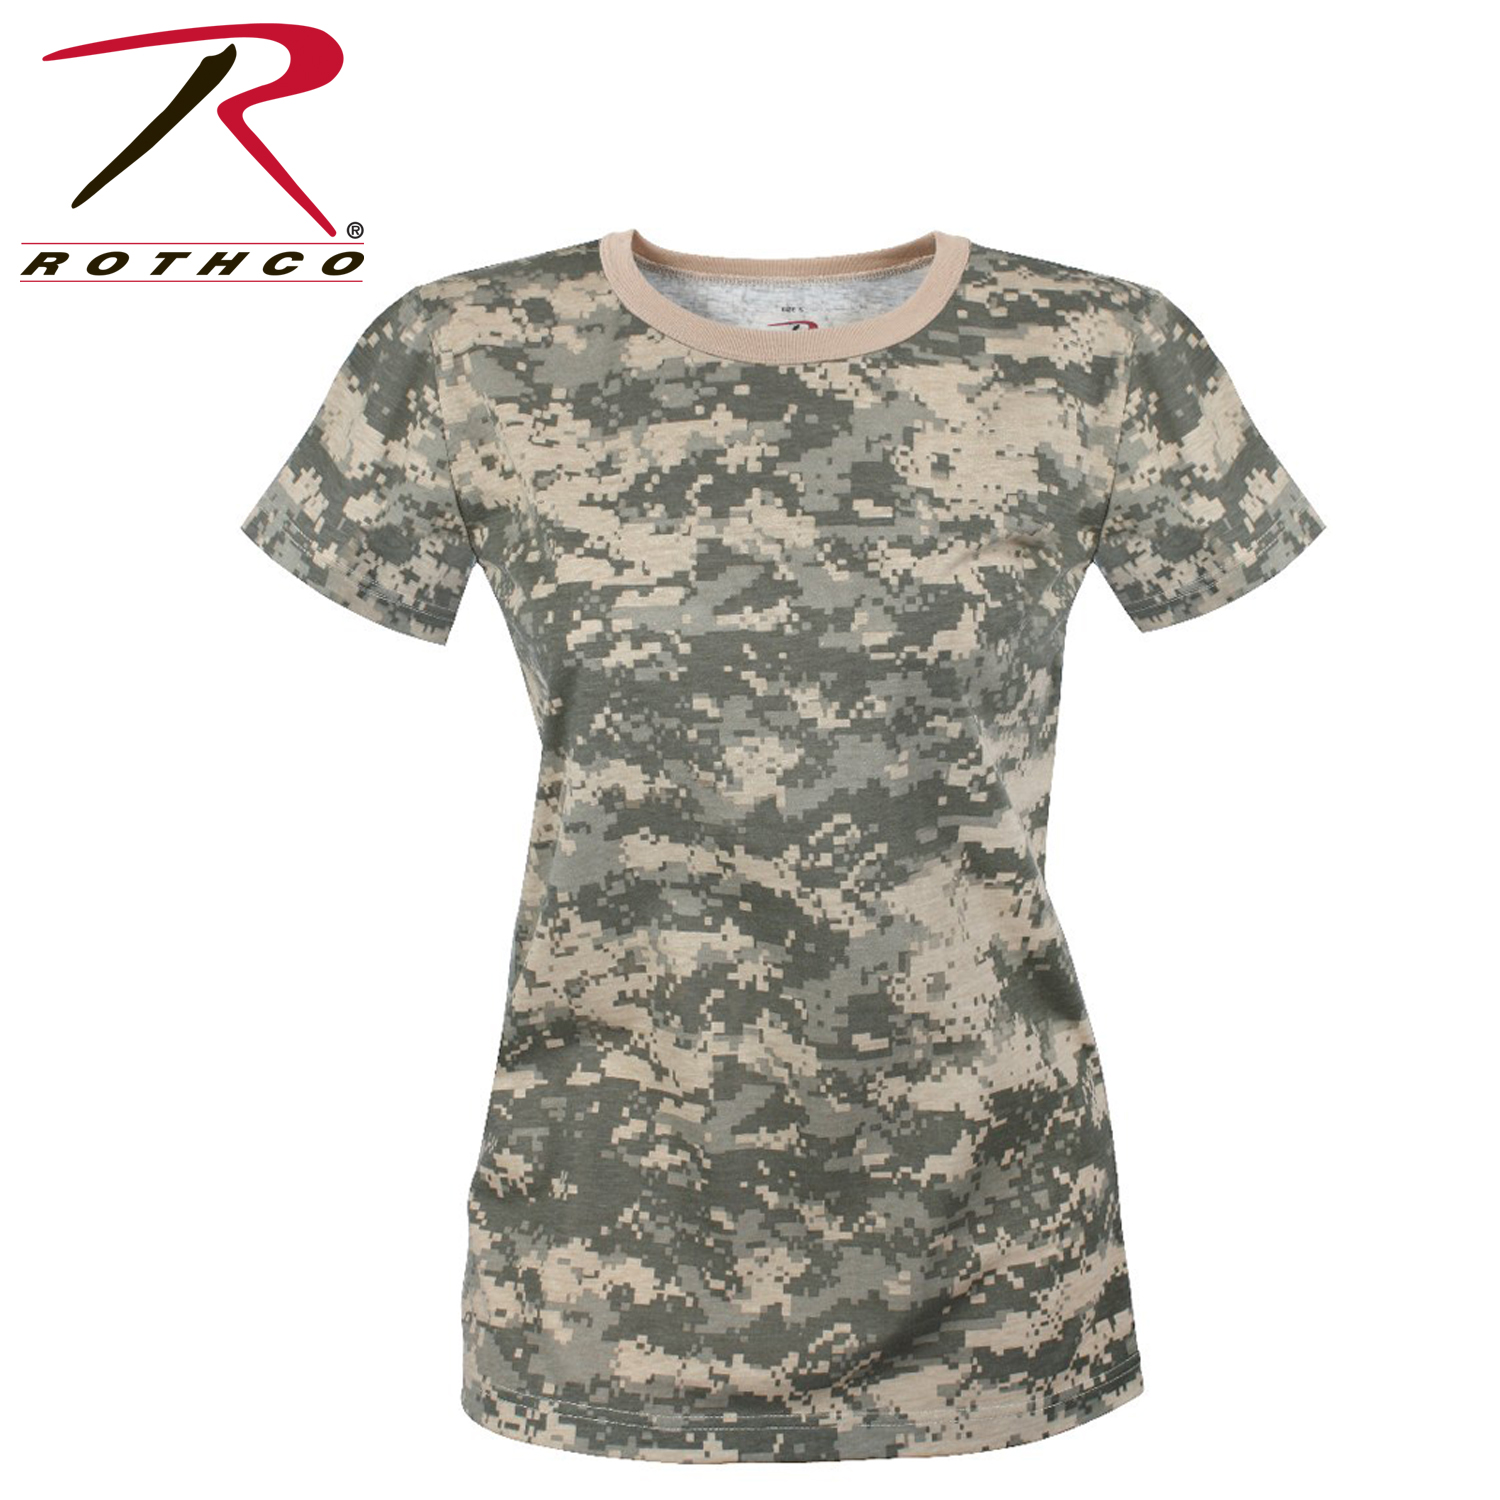 Beta Rothco Womens Long Length Camo T Shirt